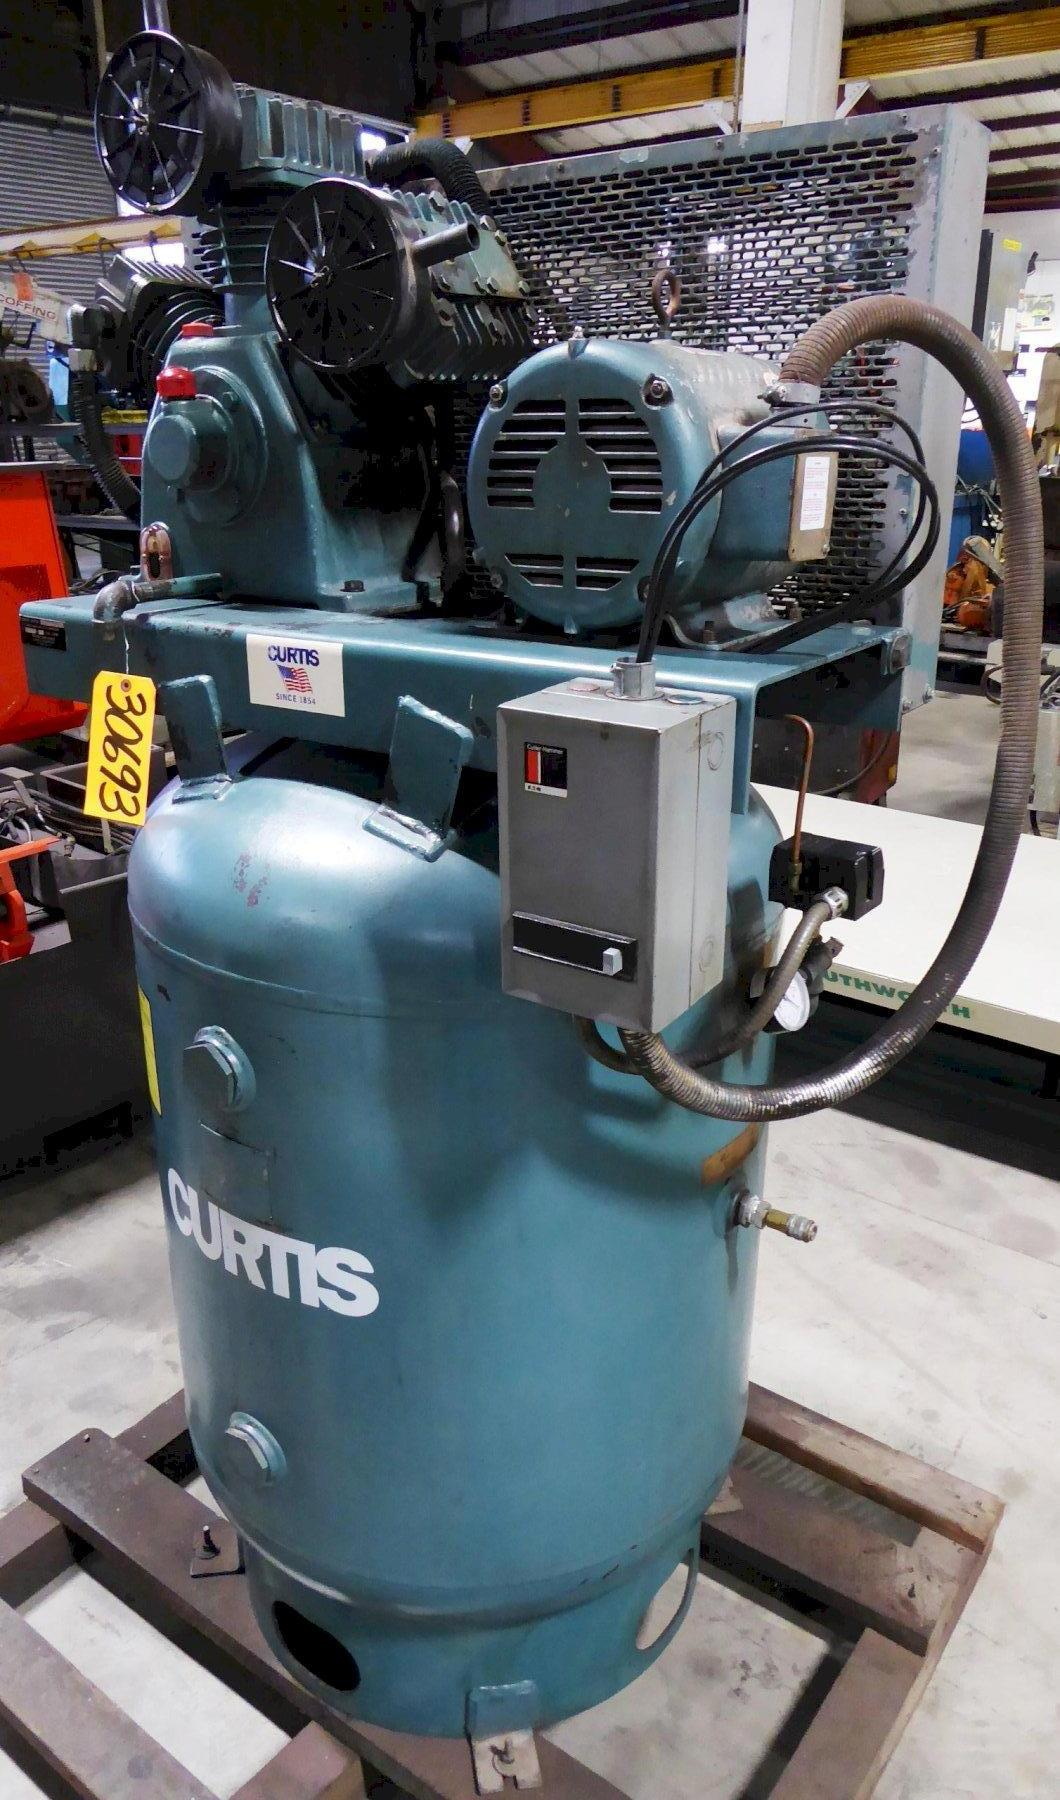 10 HP Curtis Air Compressor No. 10VT12-A3, 34 CFM @175 PSI, Three Cylinder-Two Stage,  120 Gallon Vertical Tank